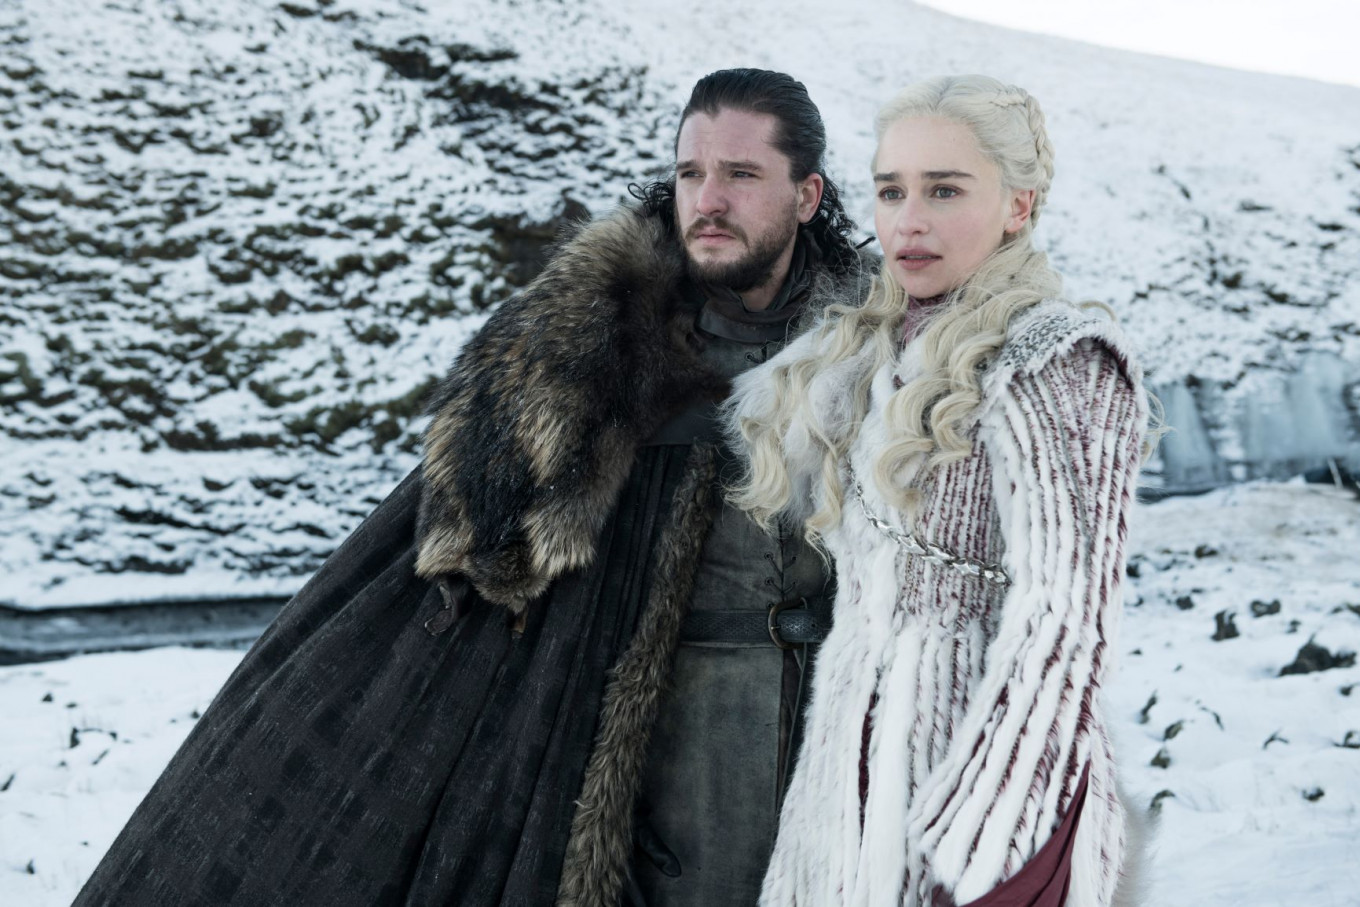 'Game of Thrones' returns for eighth and final season